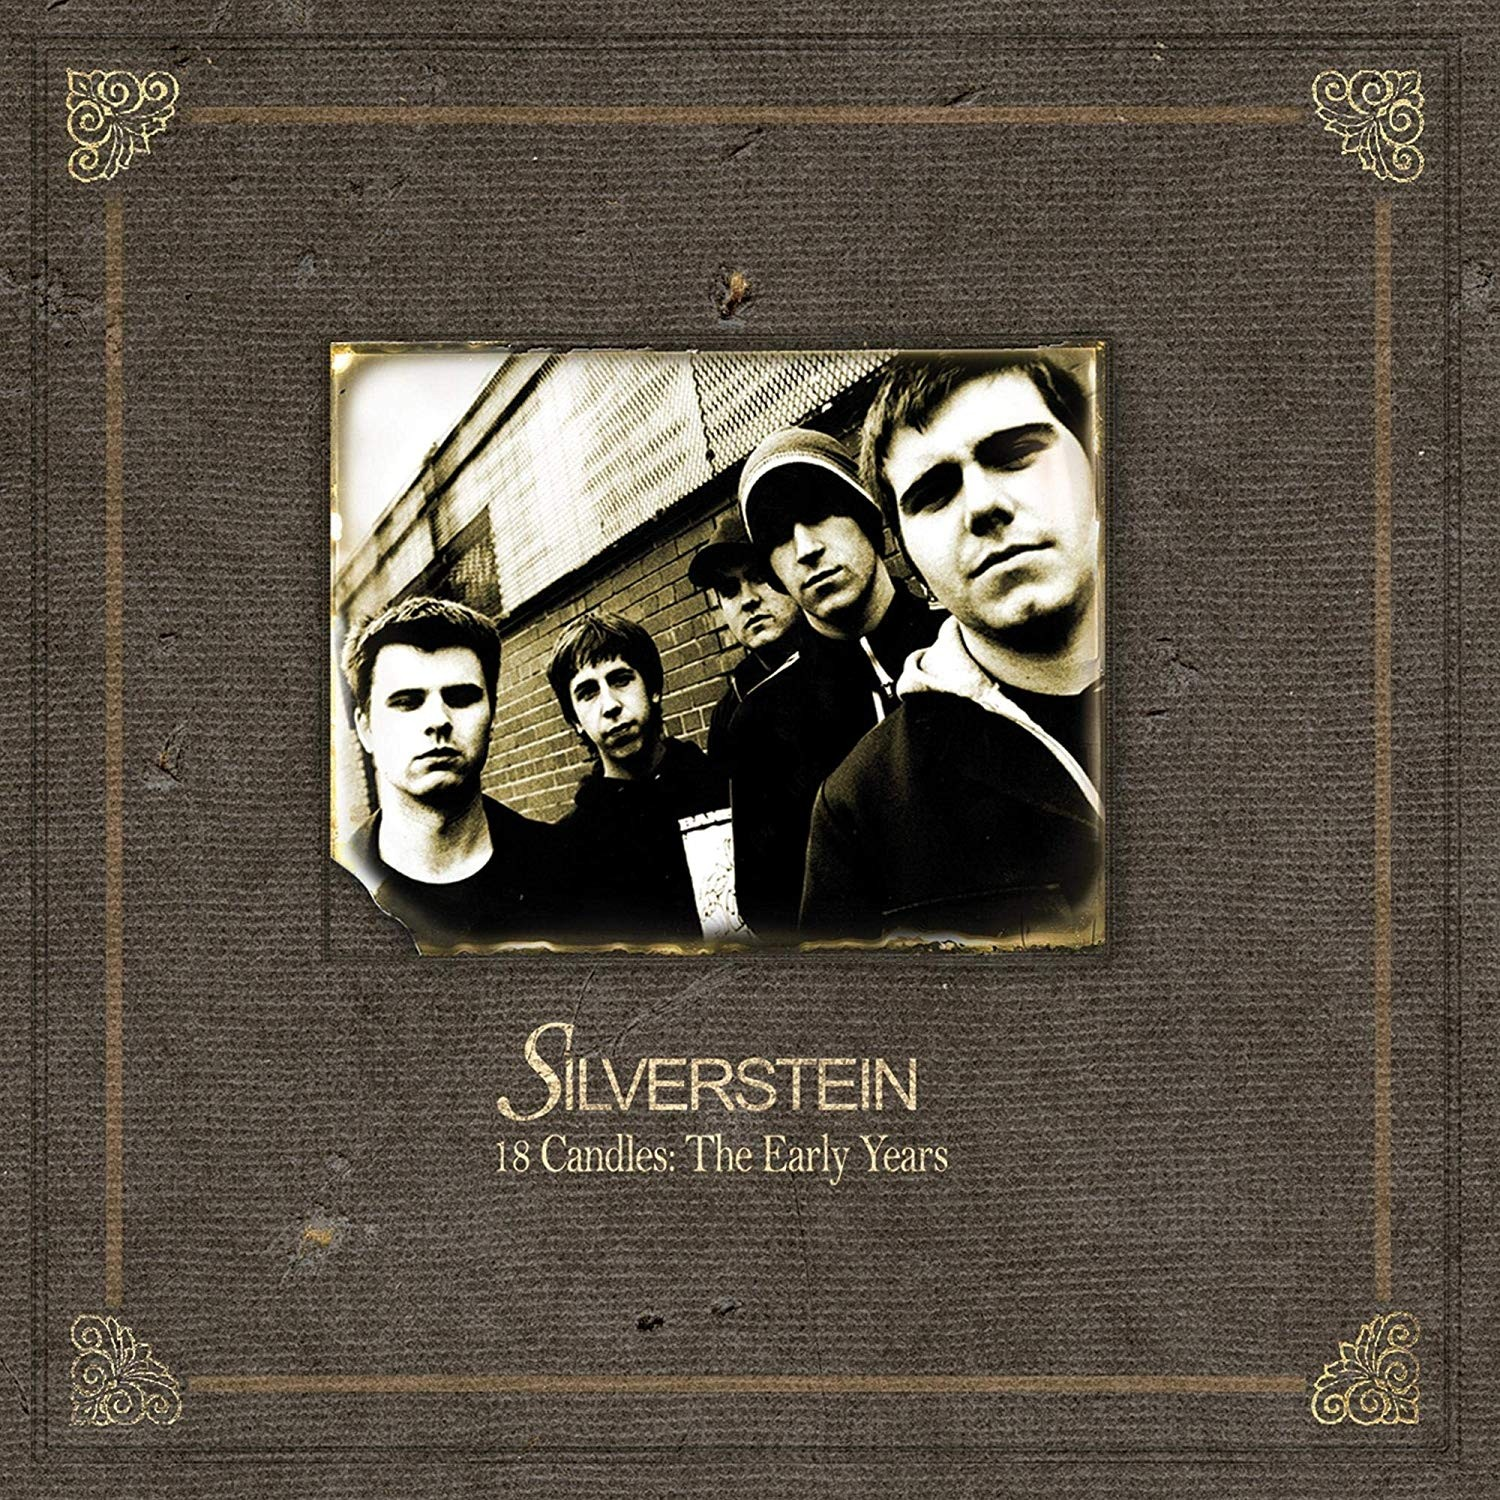 Silverstein - 18 Candles: The Early Years 2XLP Vinyl